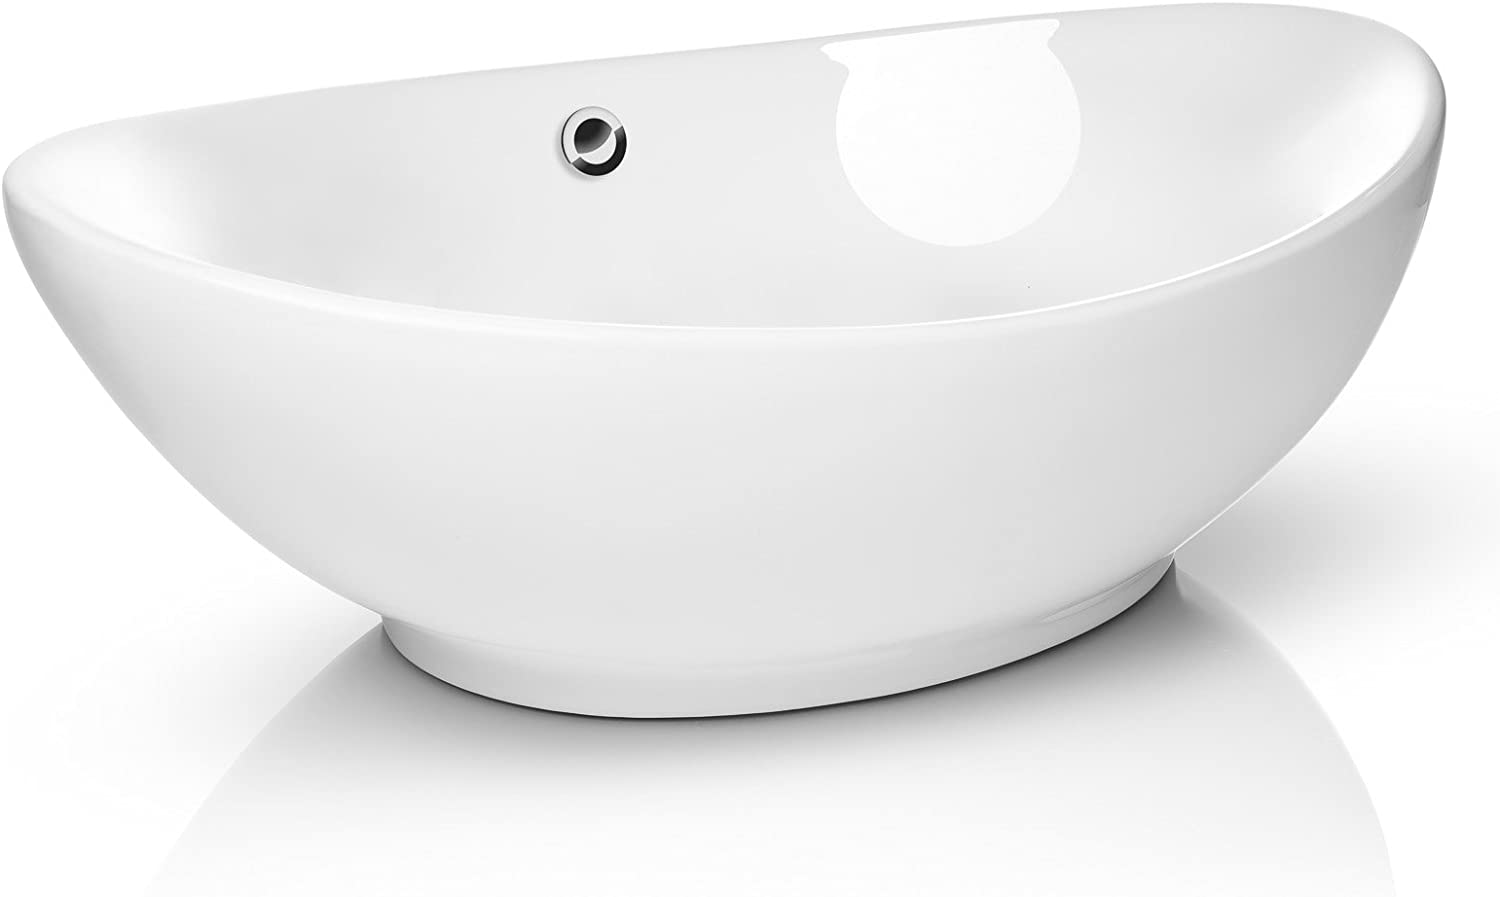 Miligore 23 x 15 Oval White Ceramic Vessel Sink – Modern Egg Shape Above Counter Bathroom Vanity Bowl